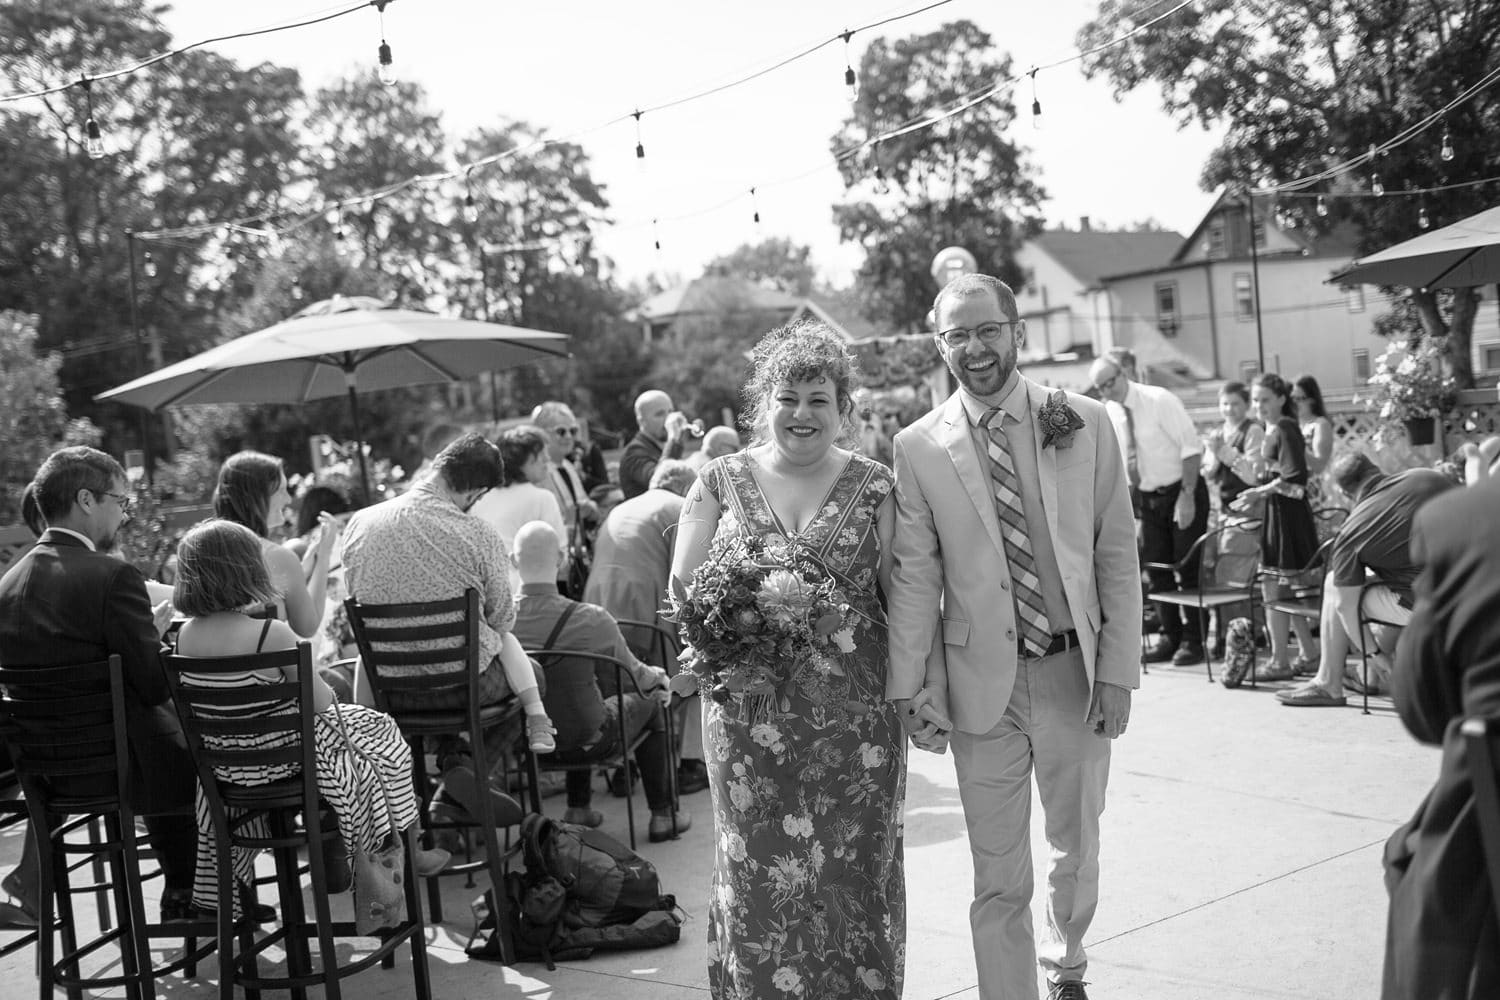 jamaica plain wedding at bella luna patio ceremony